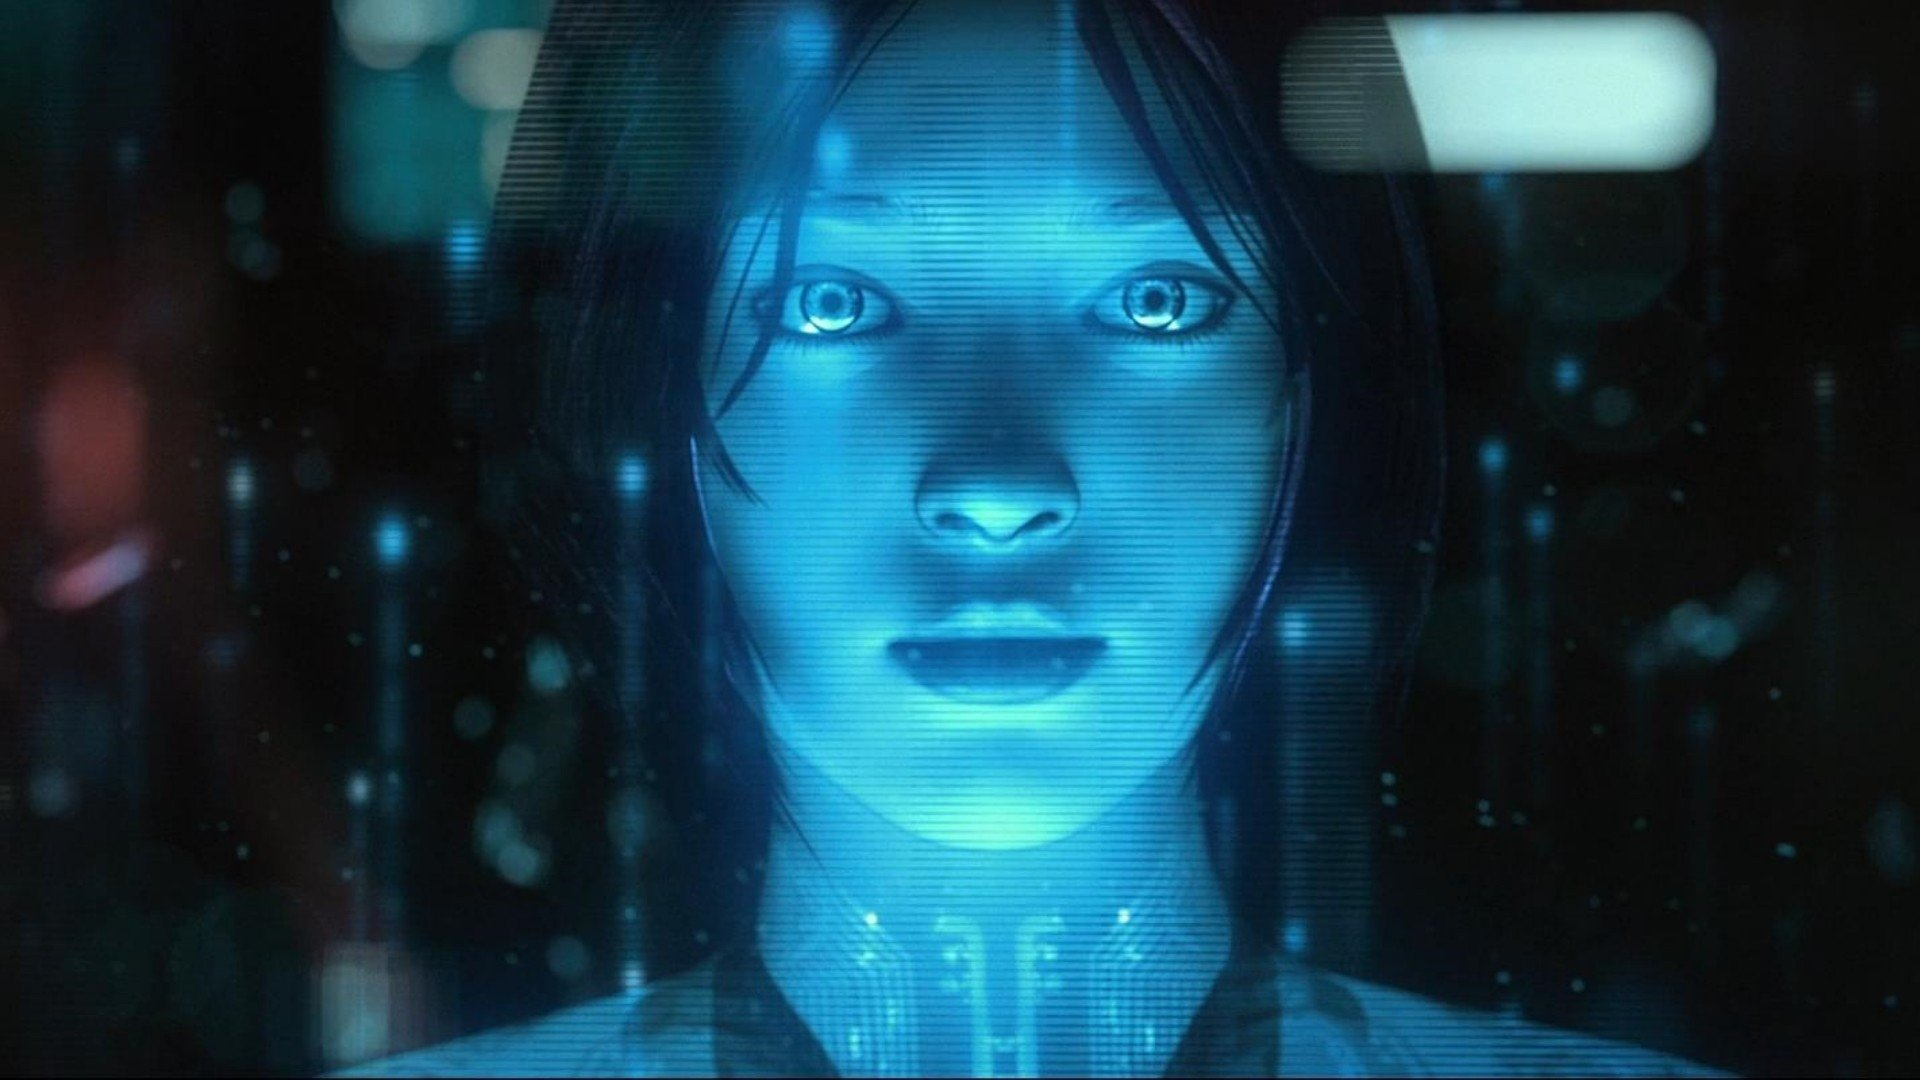 Cortana-Halo-HD-Backgrounds-Abyss-wallpaper-wpc9001367